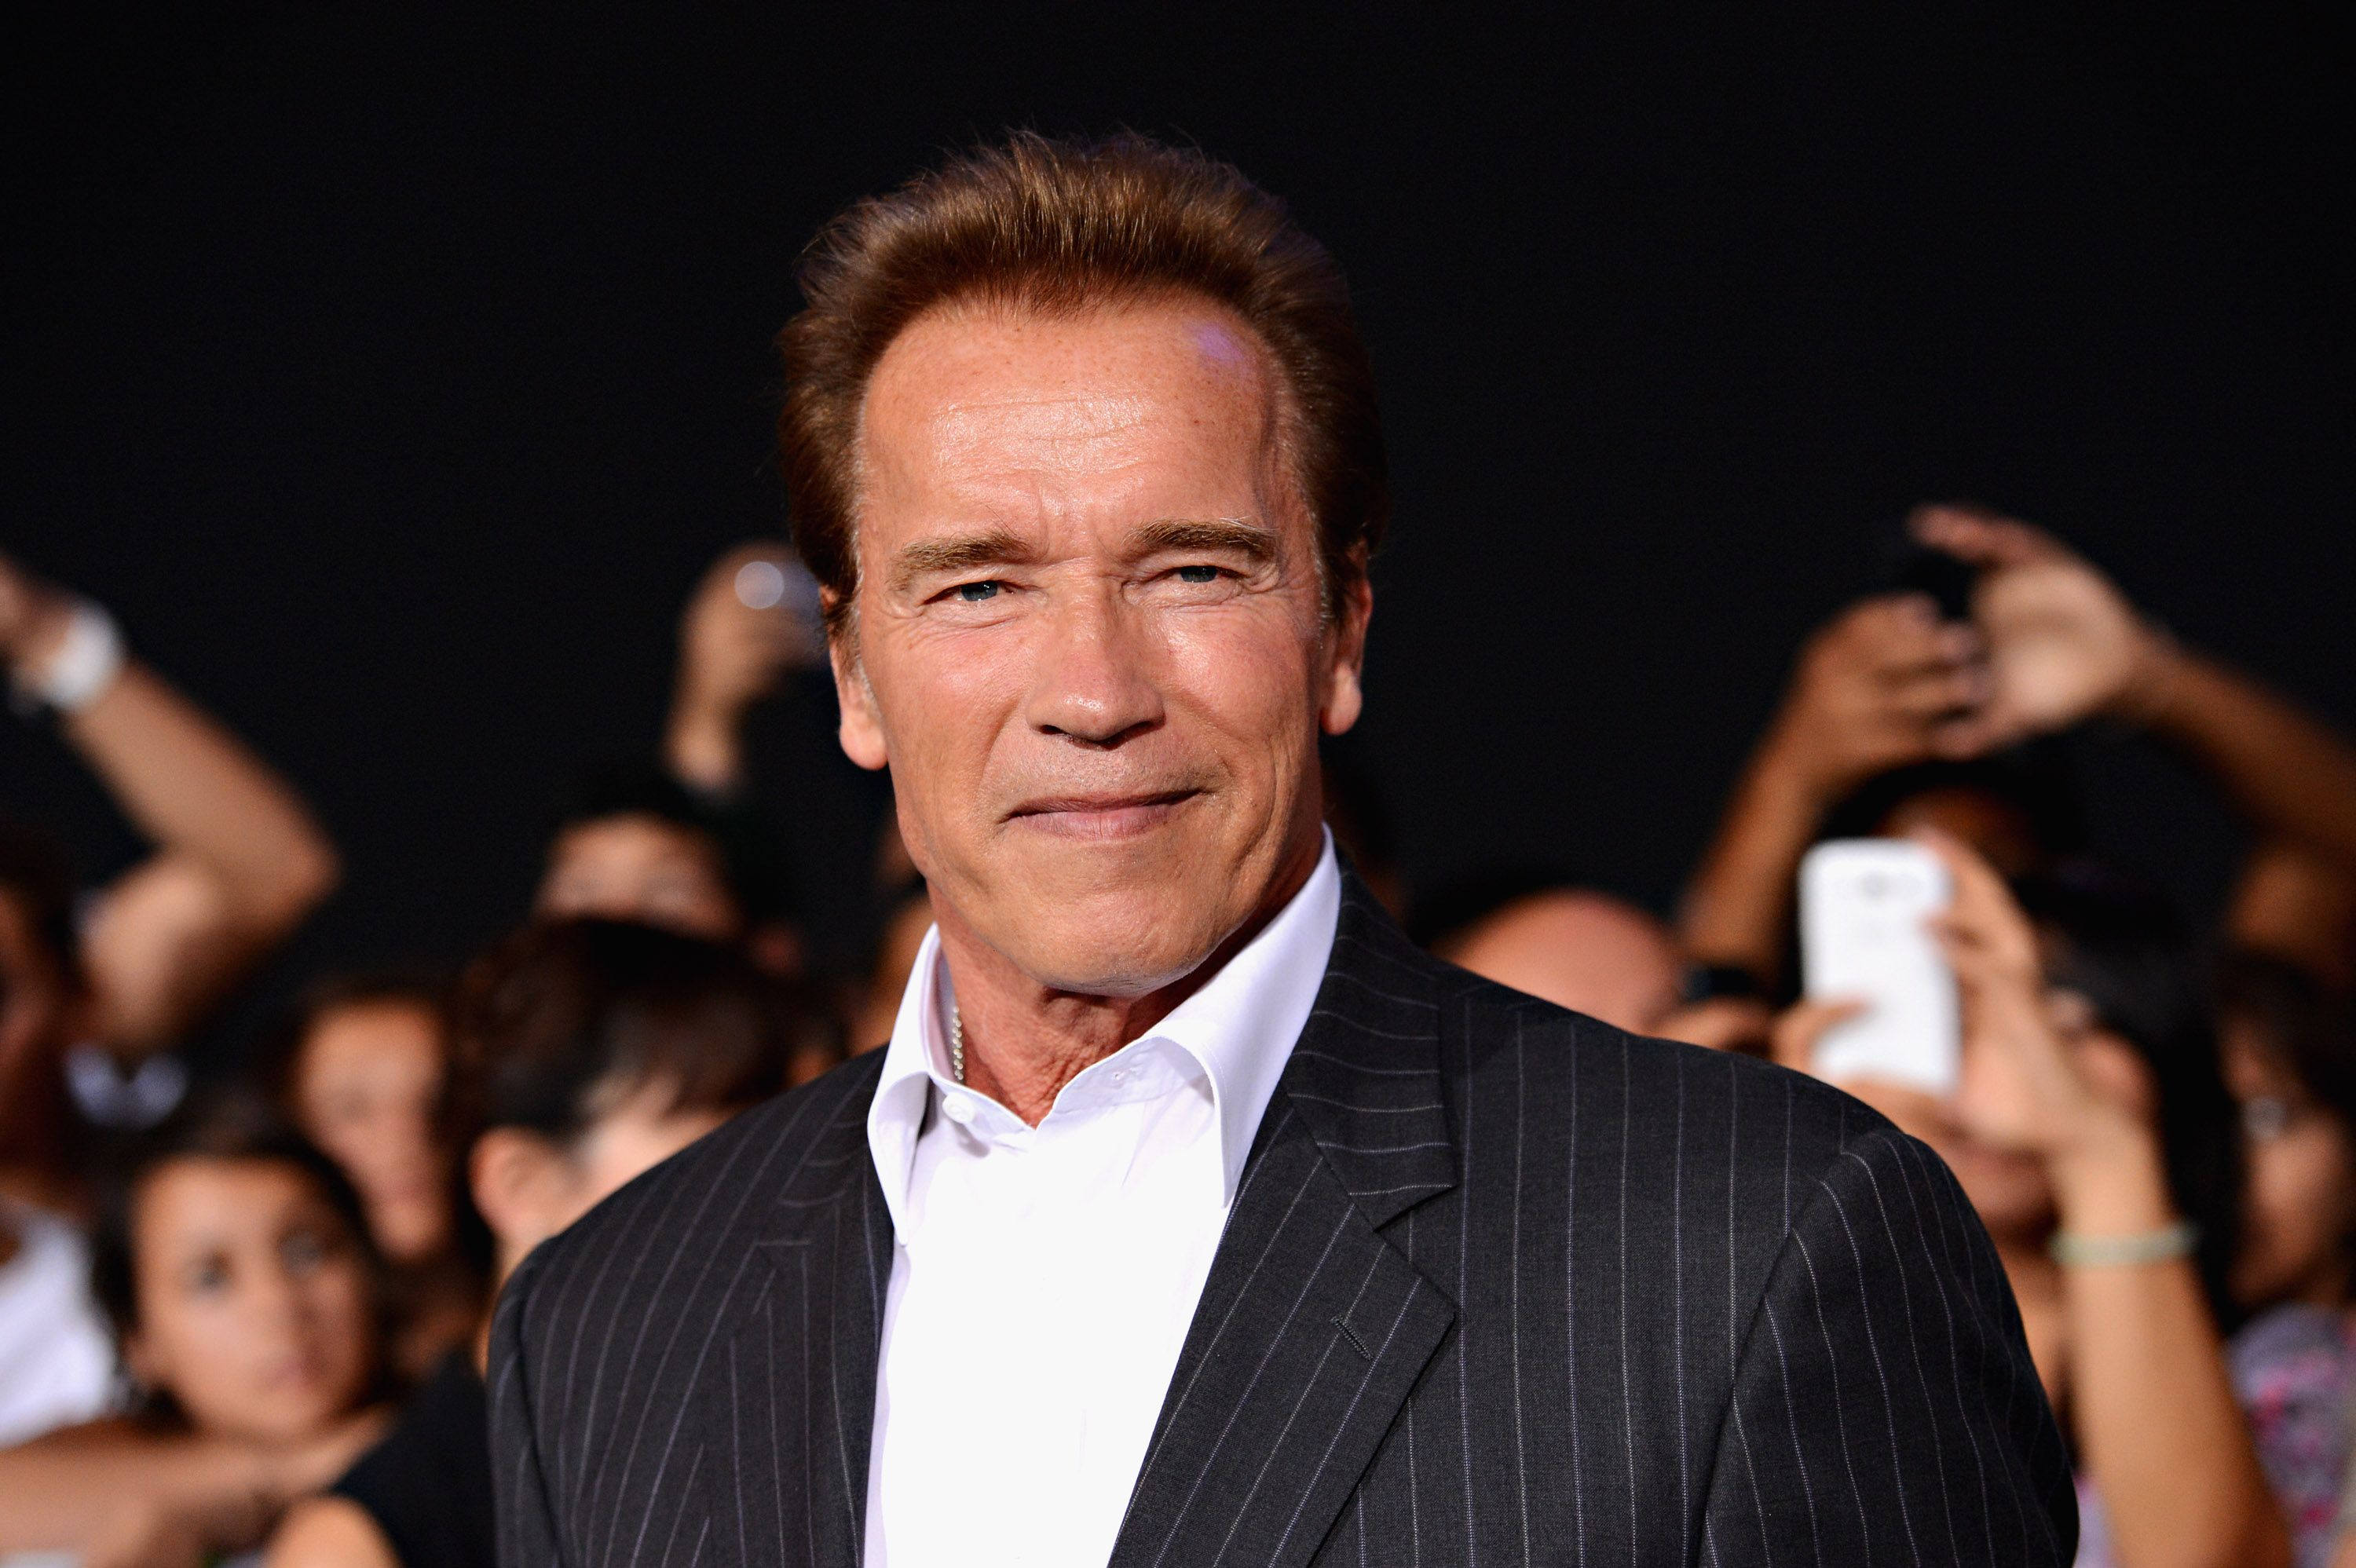 """Arnold Schwarzenegger at Lionsgate Films' """"The Expendables 2"""" premiere on August 15, 2012 in Hollywood, California 